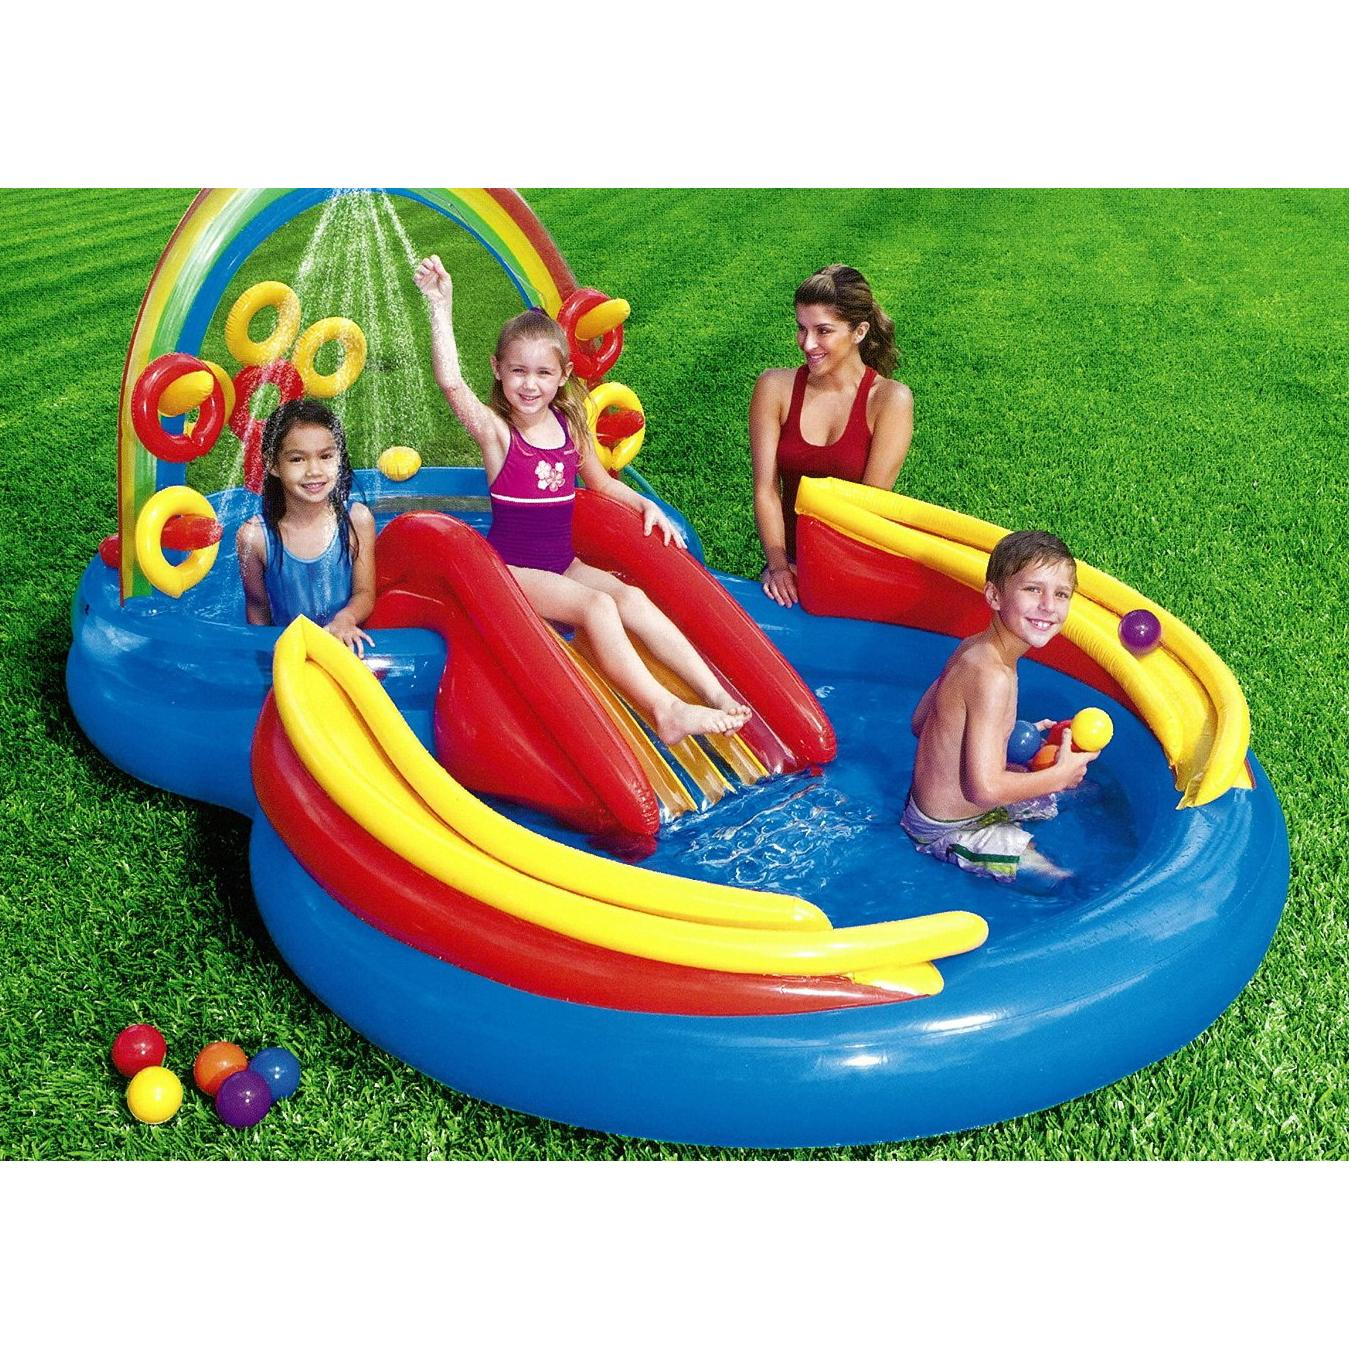 Inflatable Slide Paddling Pool: Intex Rainbow Rings Kids Activity Water Play Centre